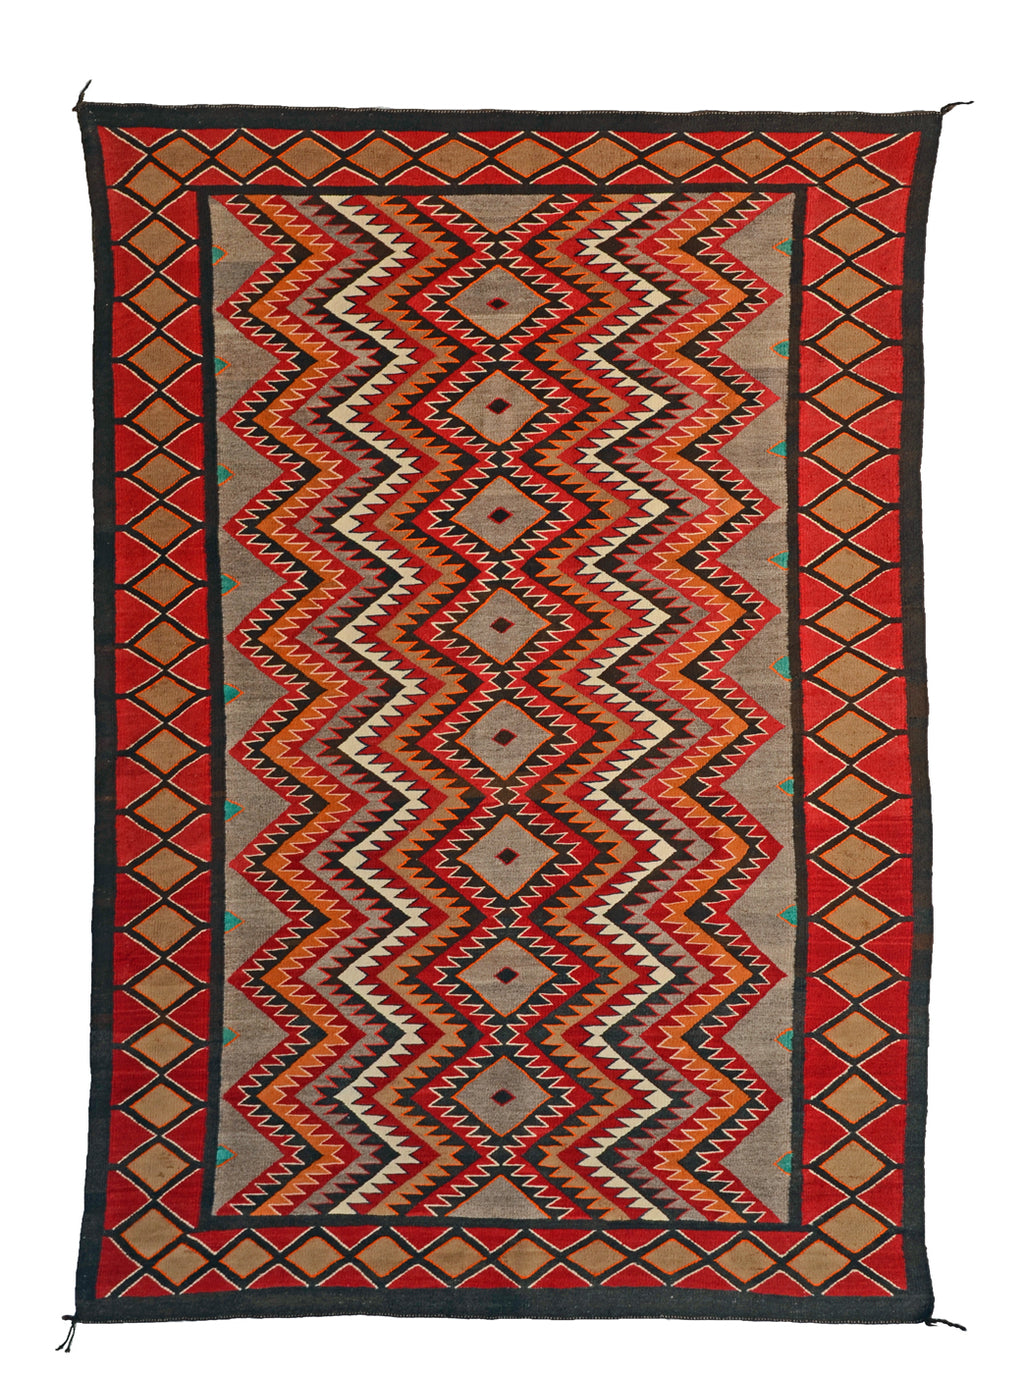 "Red Mesa / Teec Nos Pos Navajo Rug : Historic : GHT 2310 : 46"" x 69"" - Getzwiller's Nizhoni Ranch Gallery"